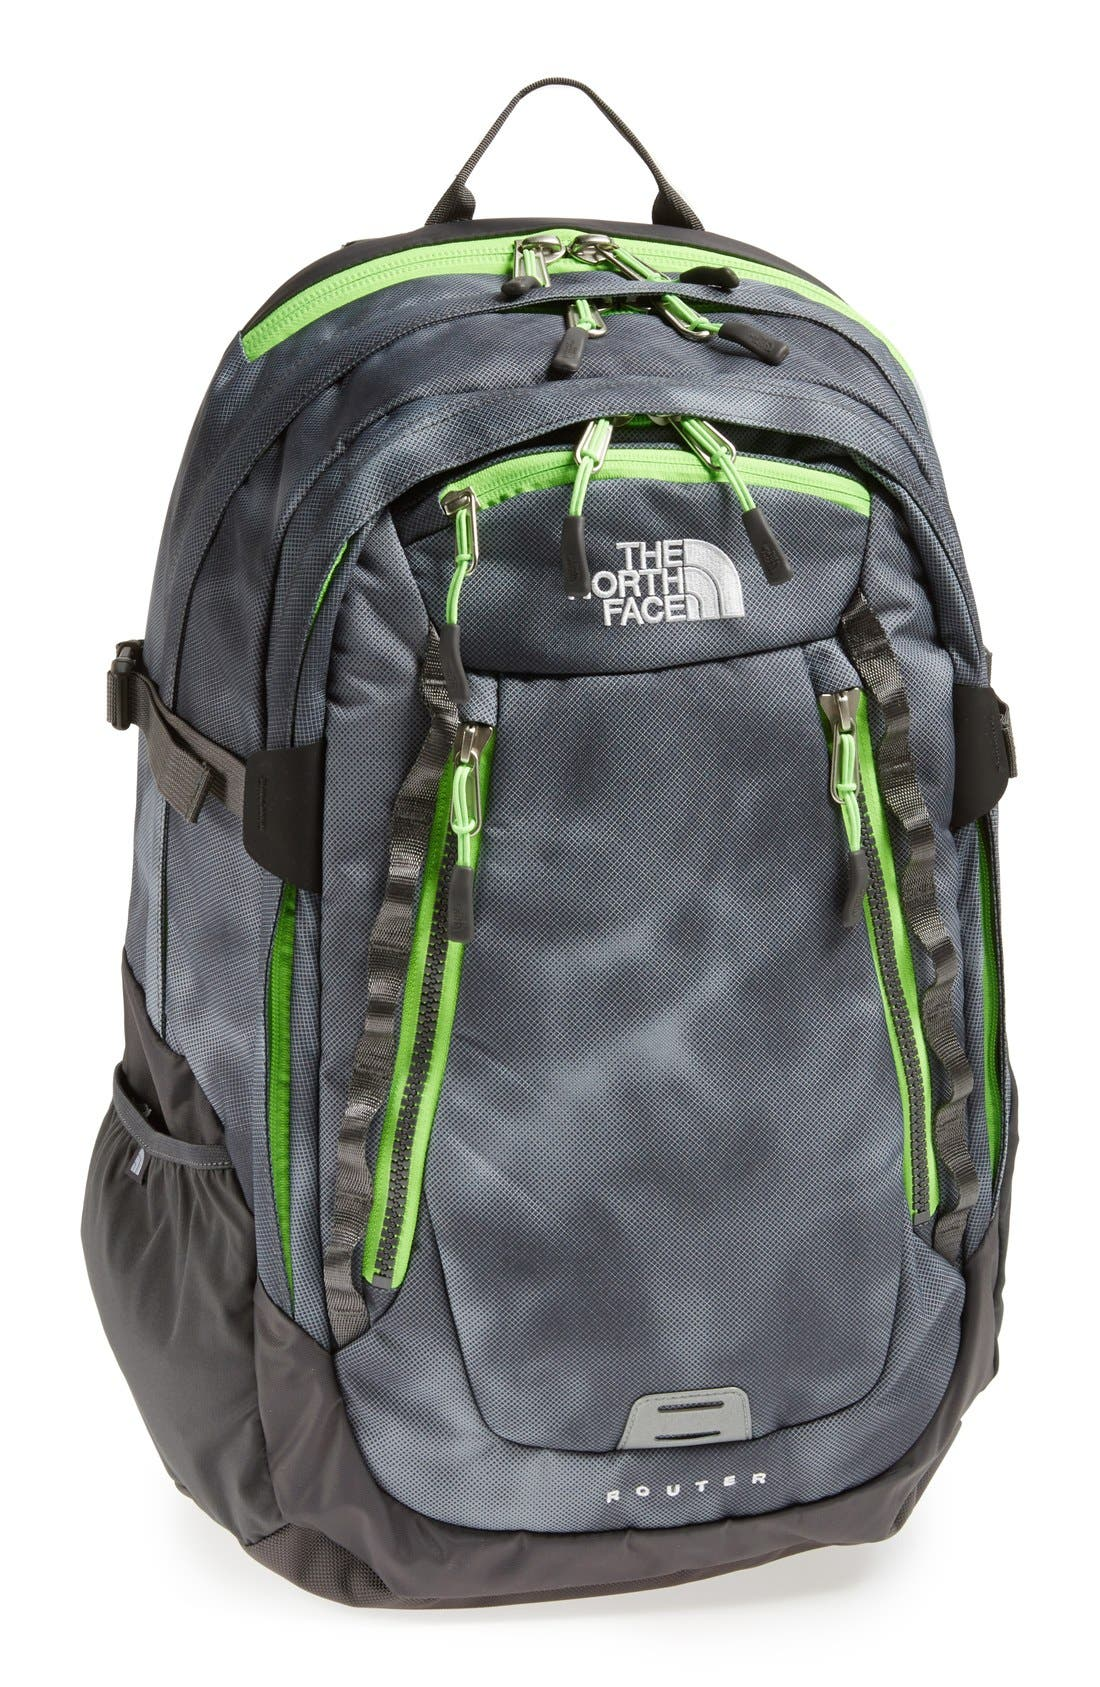 Alternate Image 1 Selected - The North Face 'Router' Backpack